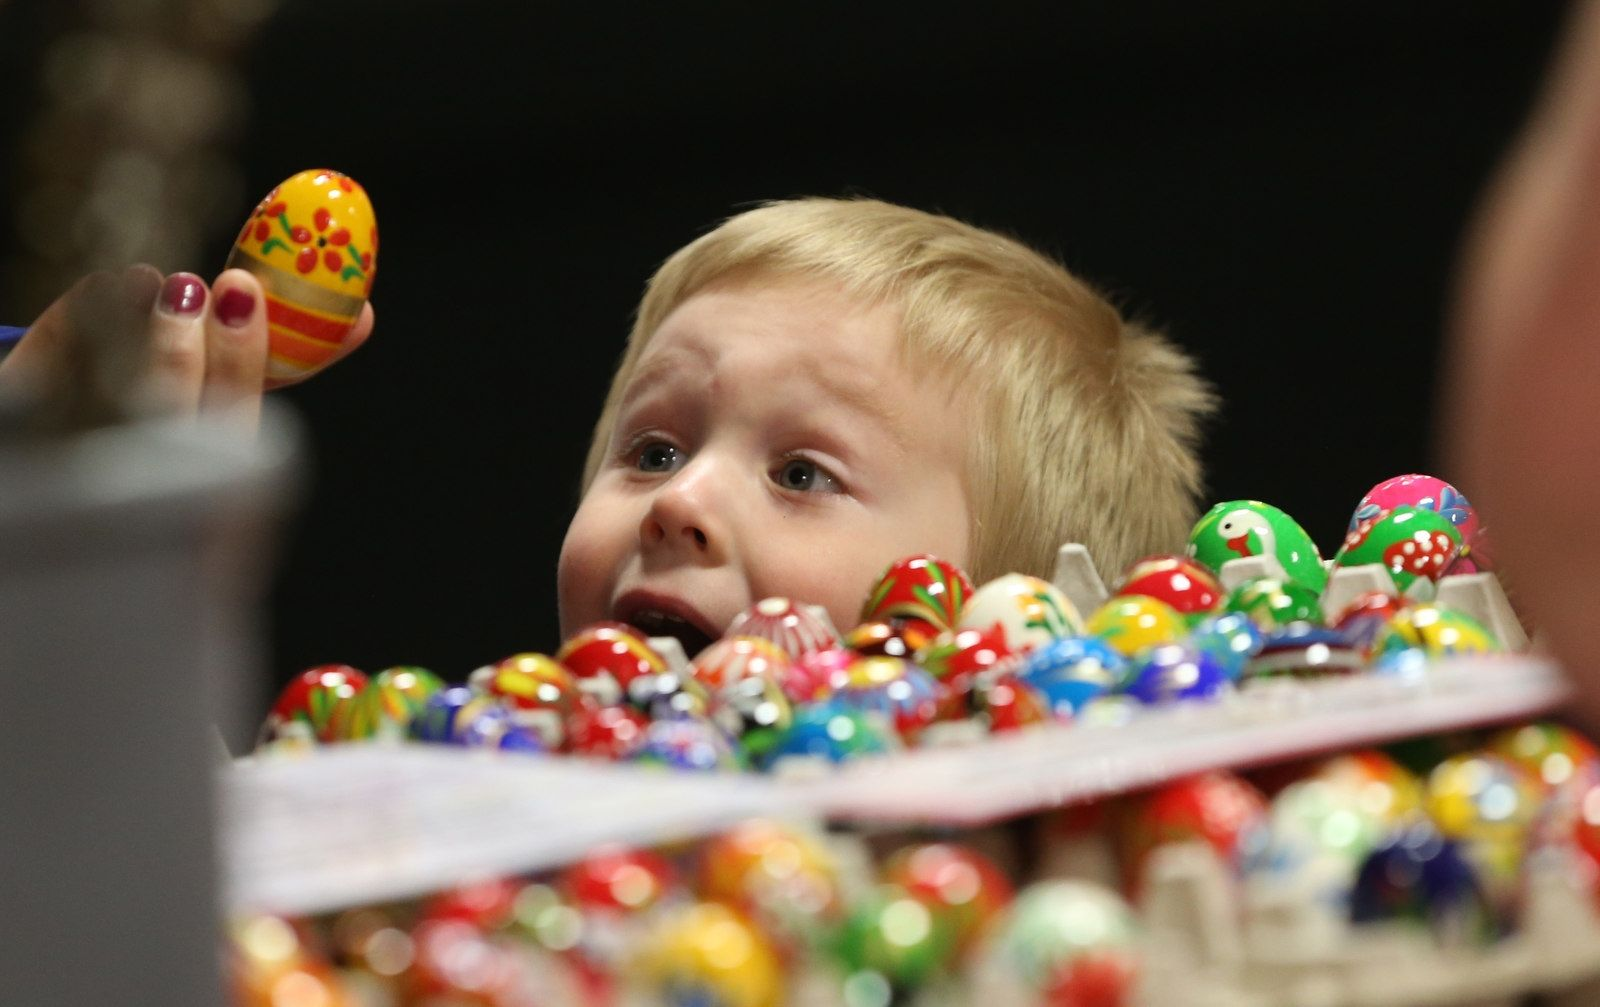 Kyle Michalek, 3, gets excited about picking out some Polish wooden eggs with his mom at Lewandowski Produce inside the Broadway Market.